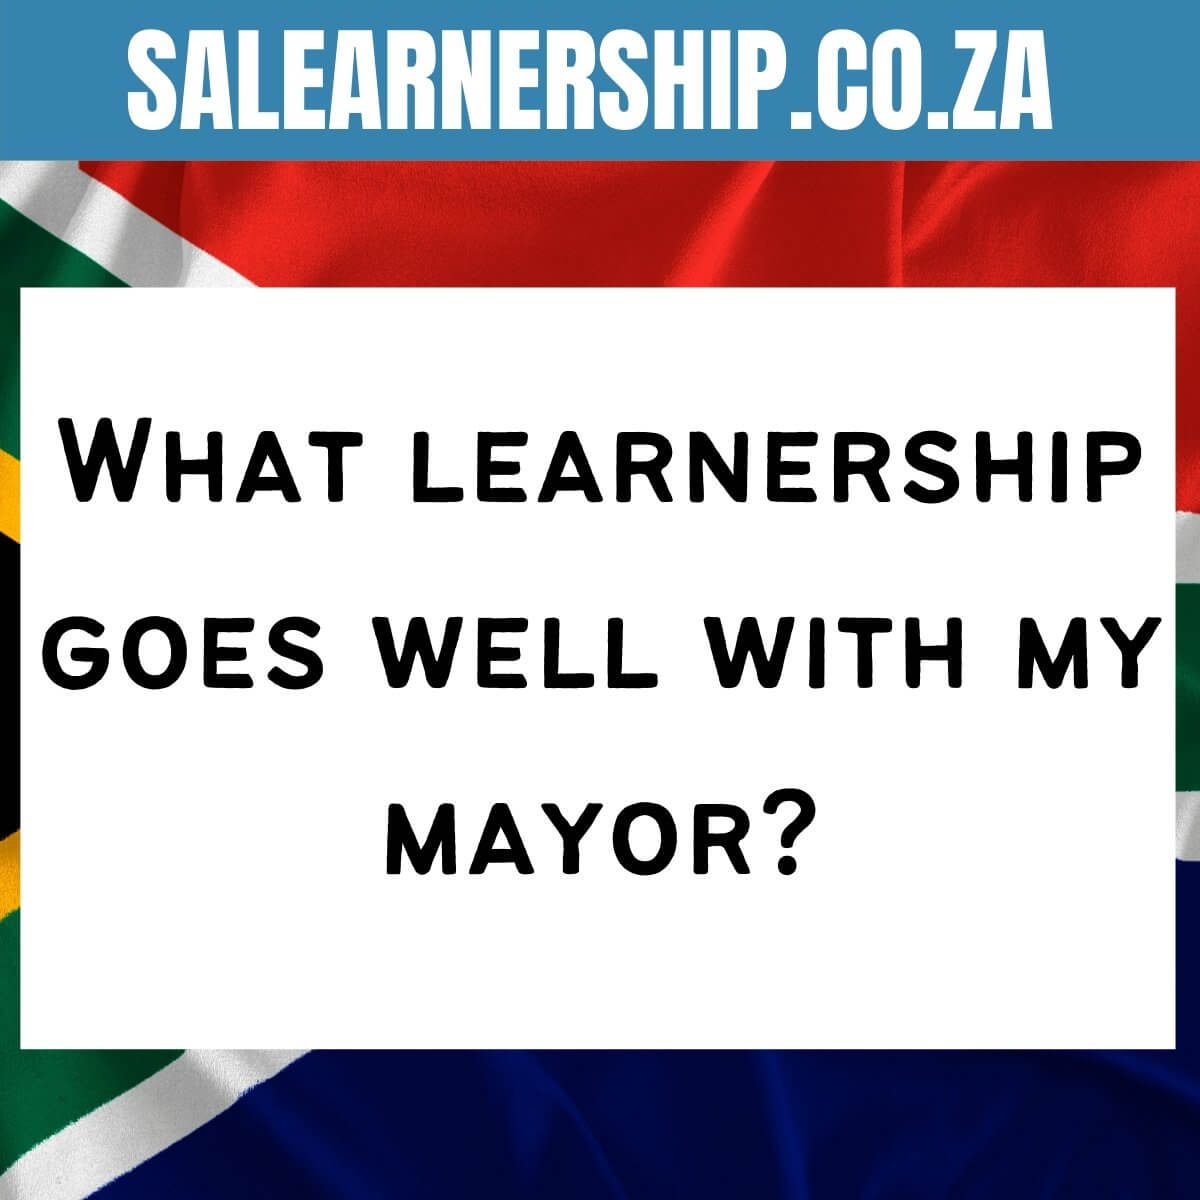 What learnership goes well with my mayor_